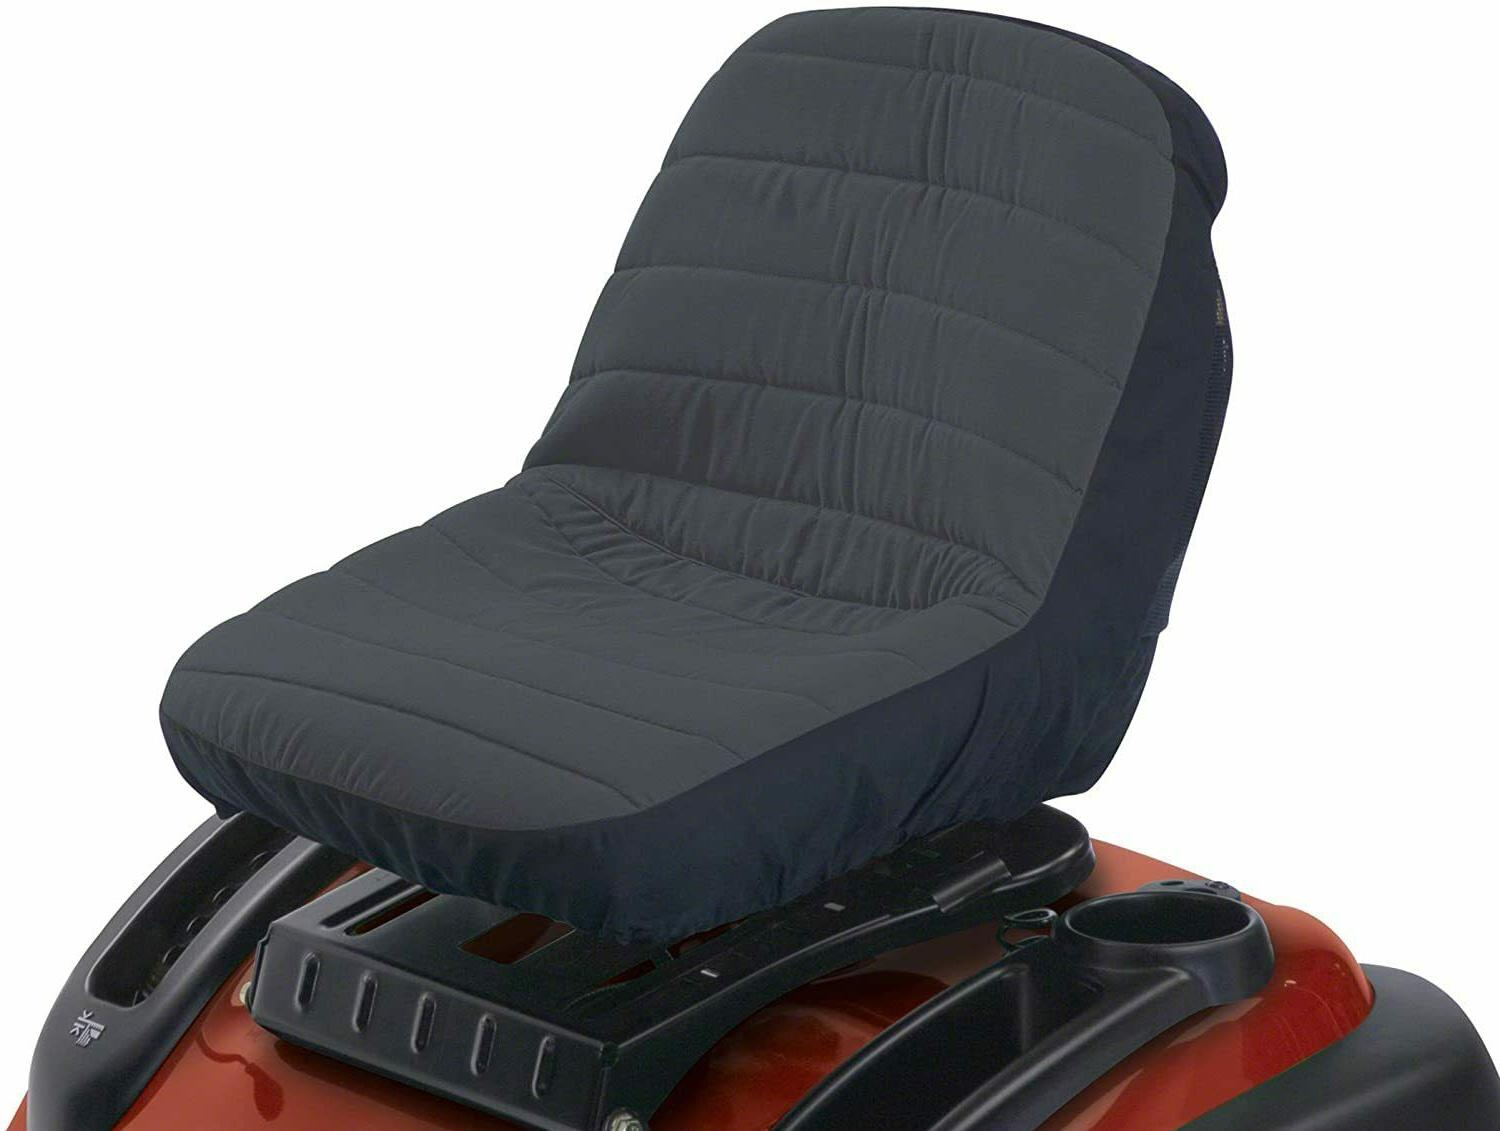 fabric seat cover for lawn mower tractor